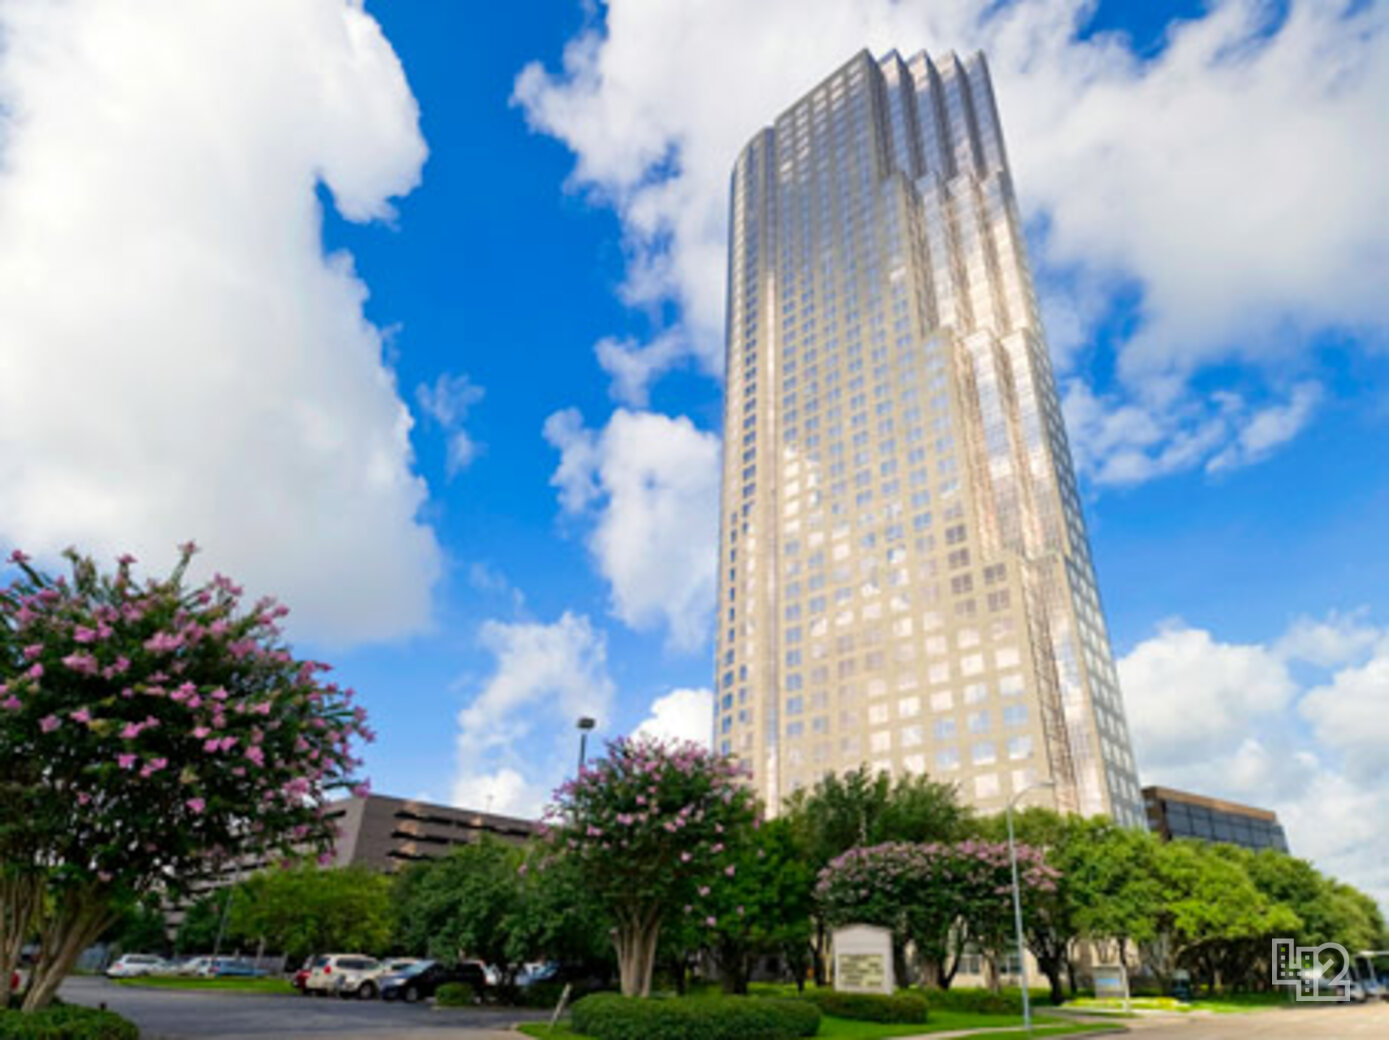 Picture of office building for Porter Investments, a quantitative money manager in Houston.